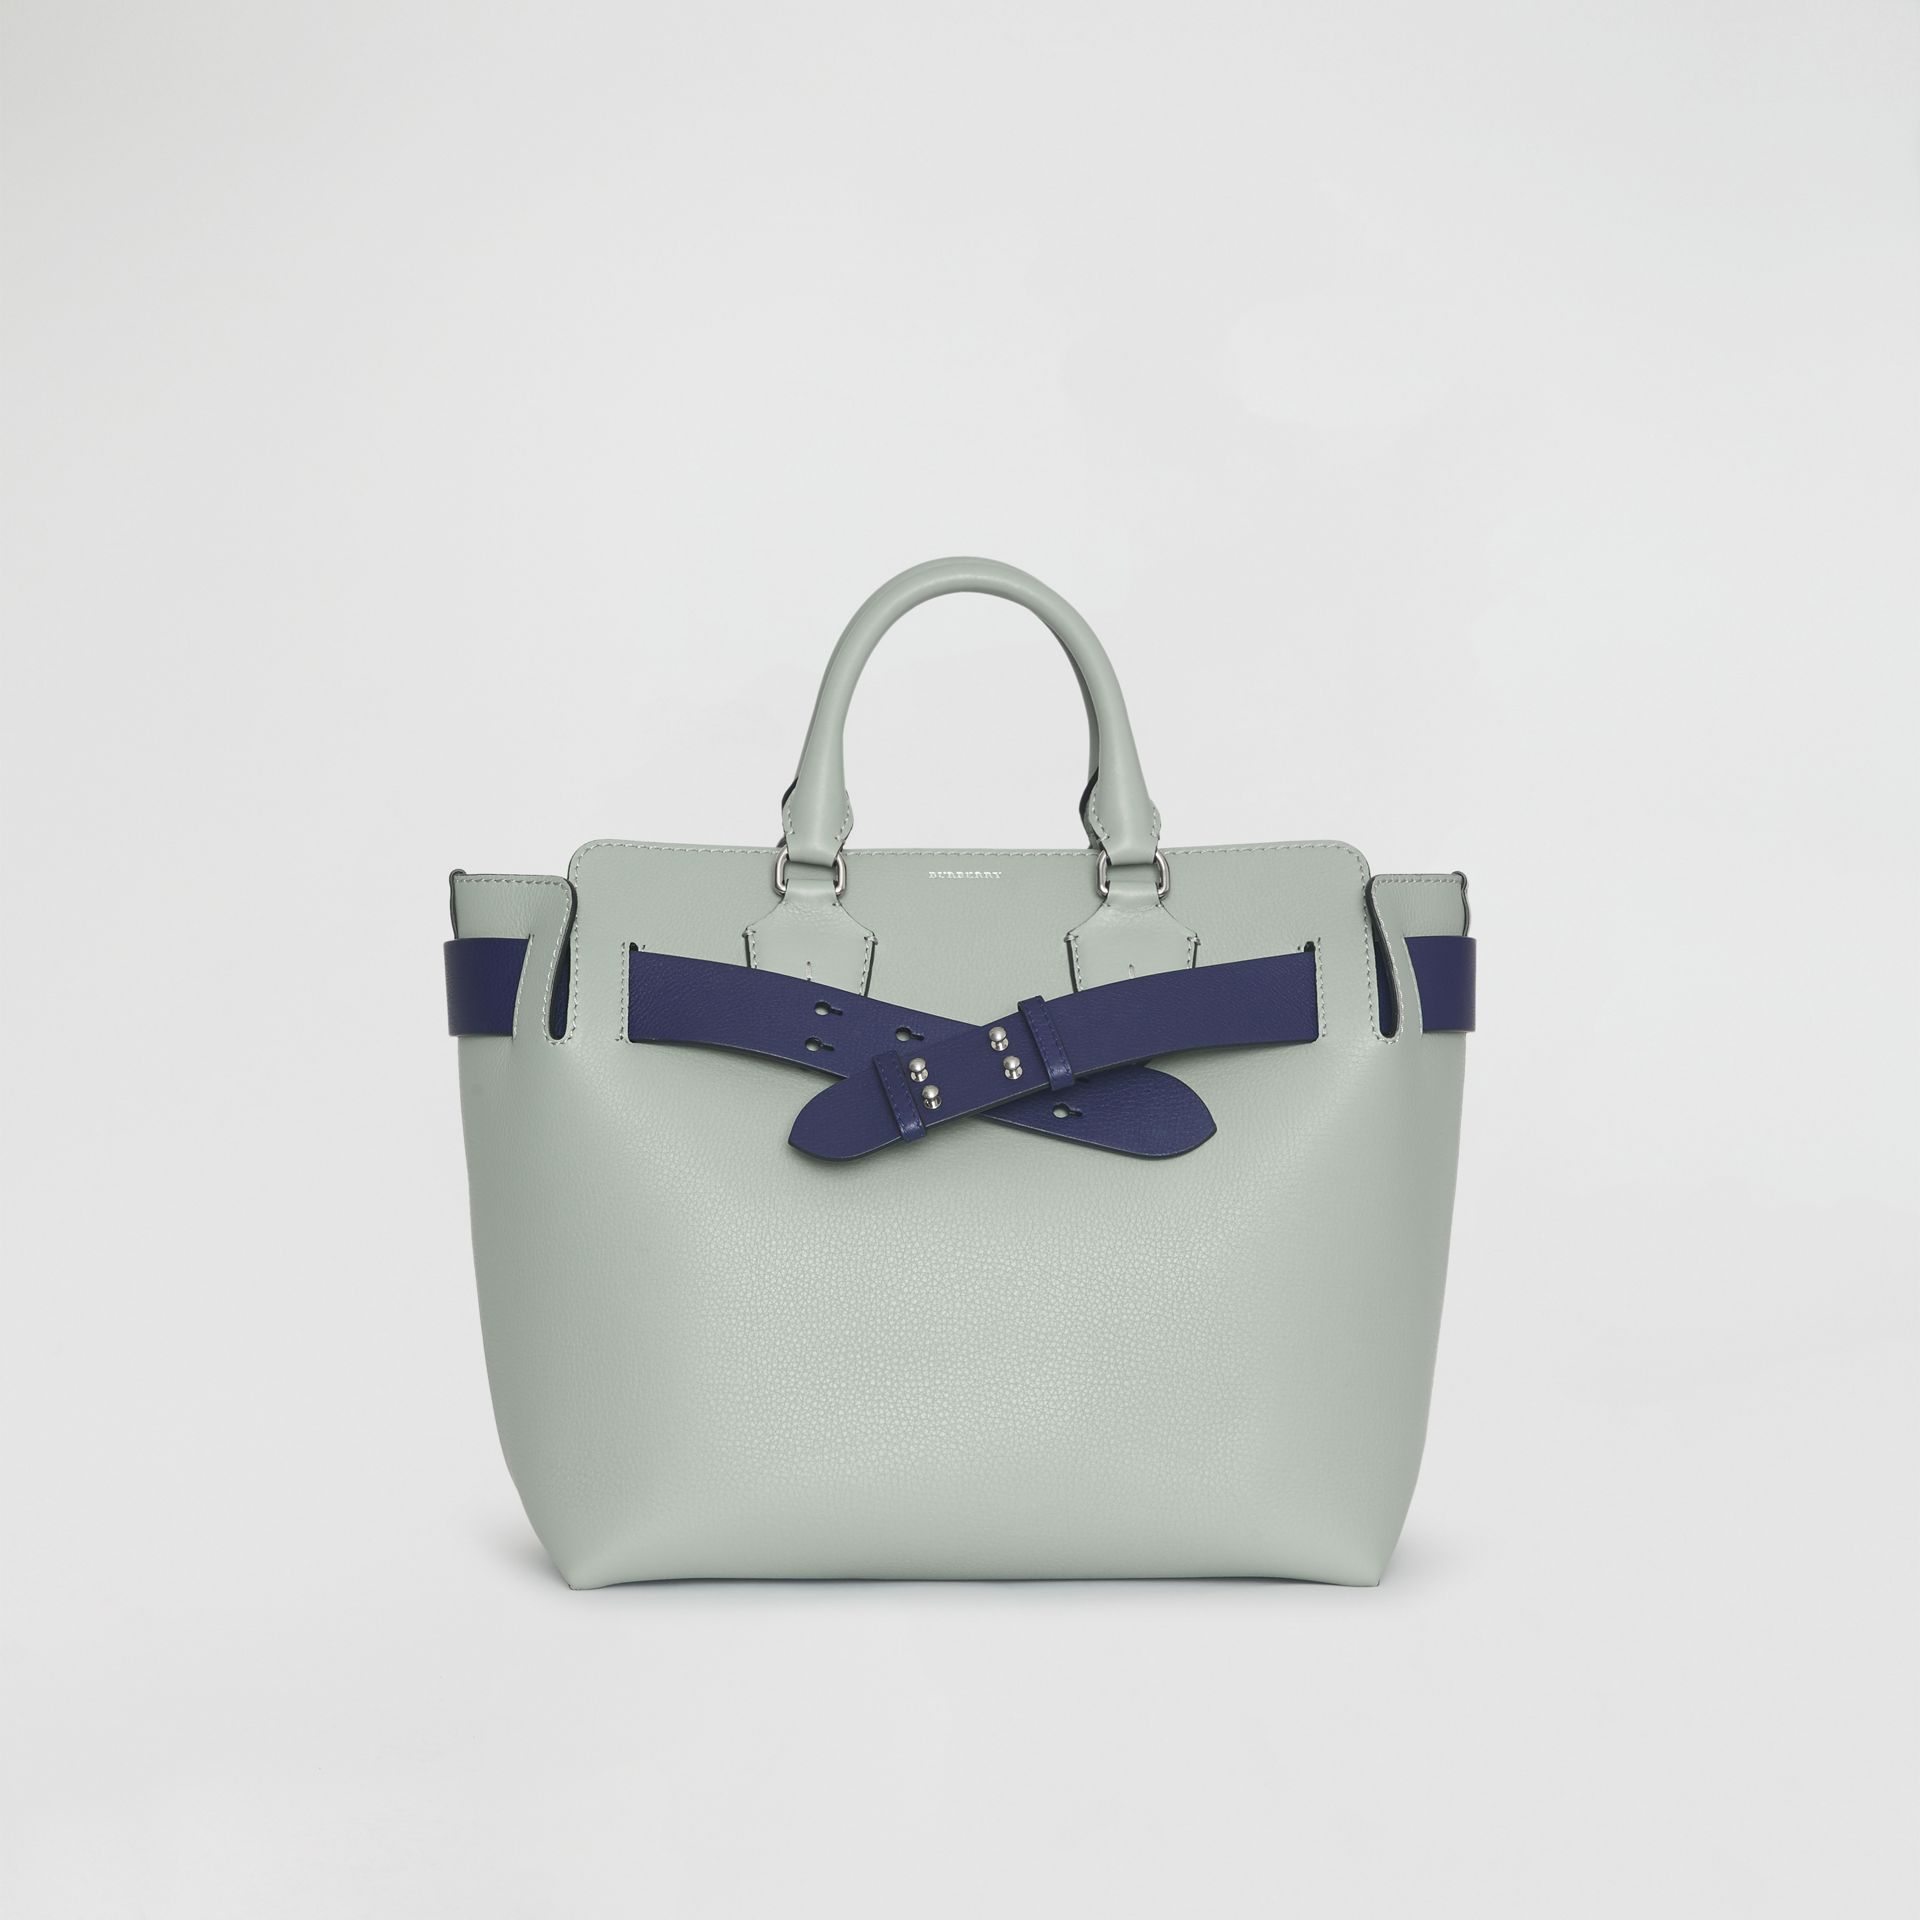 Sac The Belt moyen en cuir (Gris Bleu) - Femme | Burberry - photo de la galerie 0